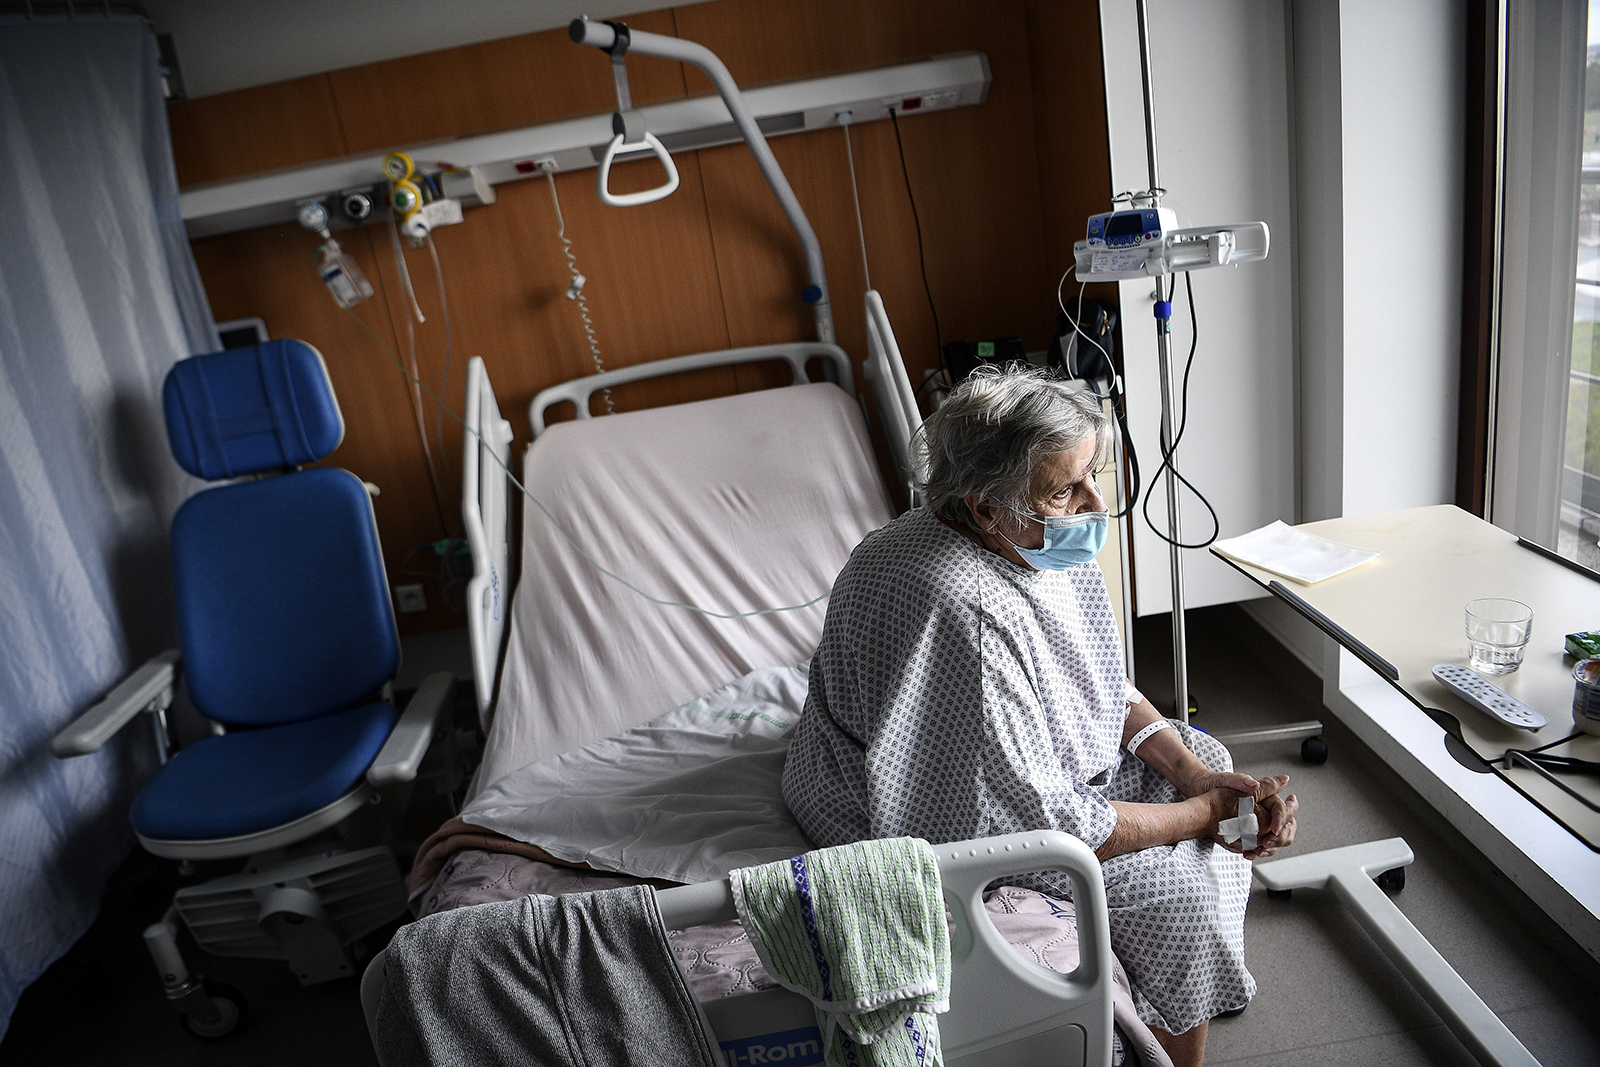 A patient infected with Covid-19 sits on her bed in the infectious diseases unit of the Gonesse hospital in Gonesse, north of Paris, on October 22.